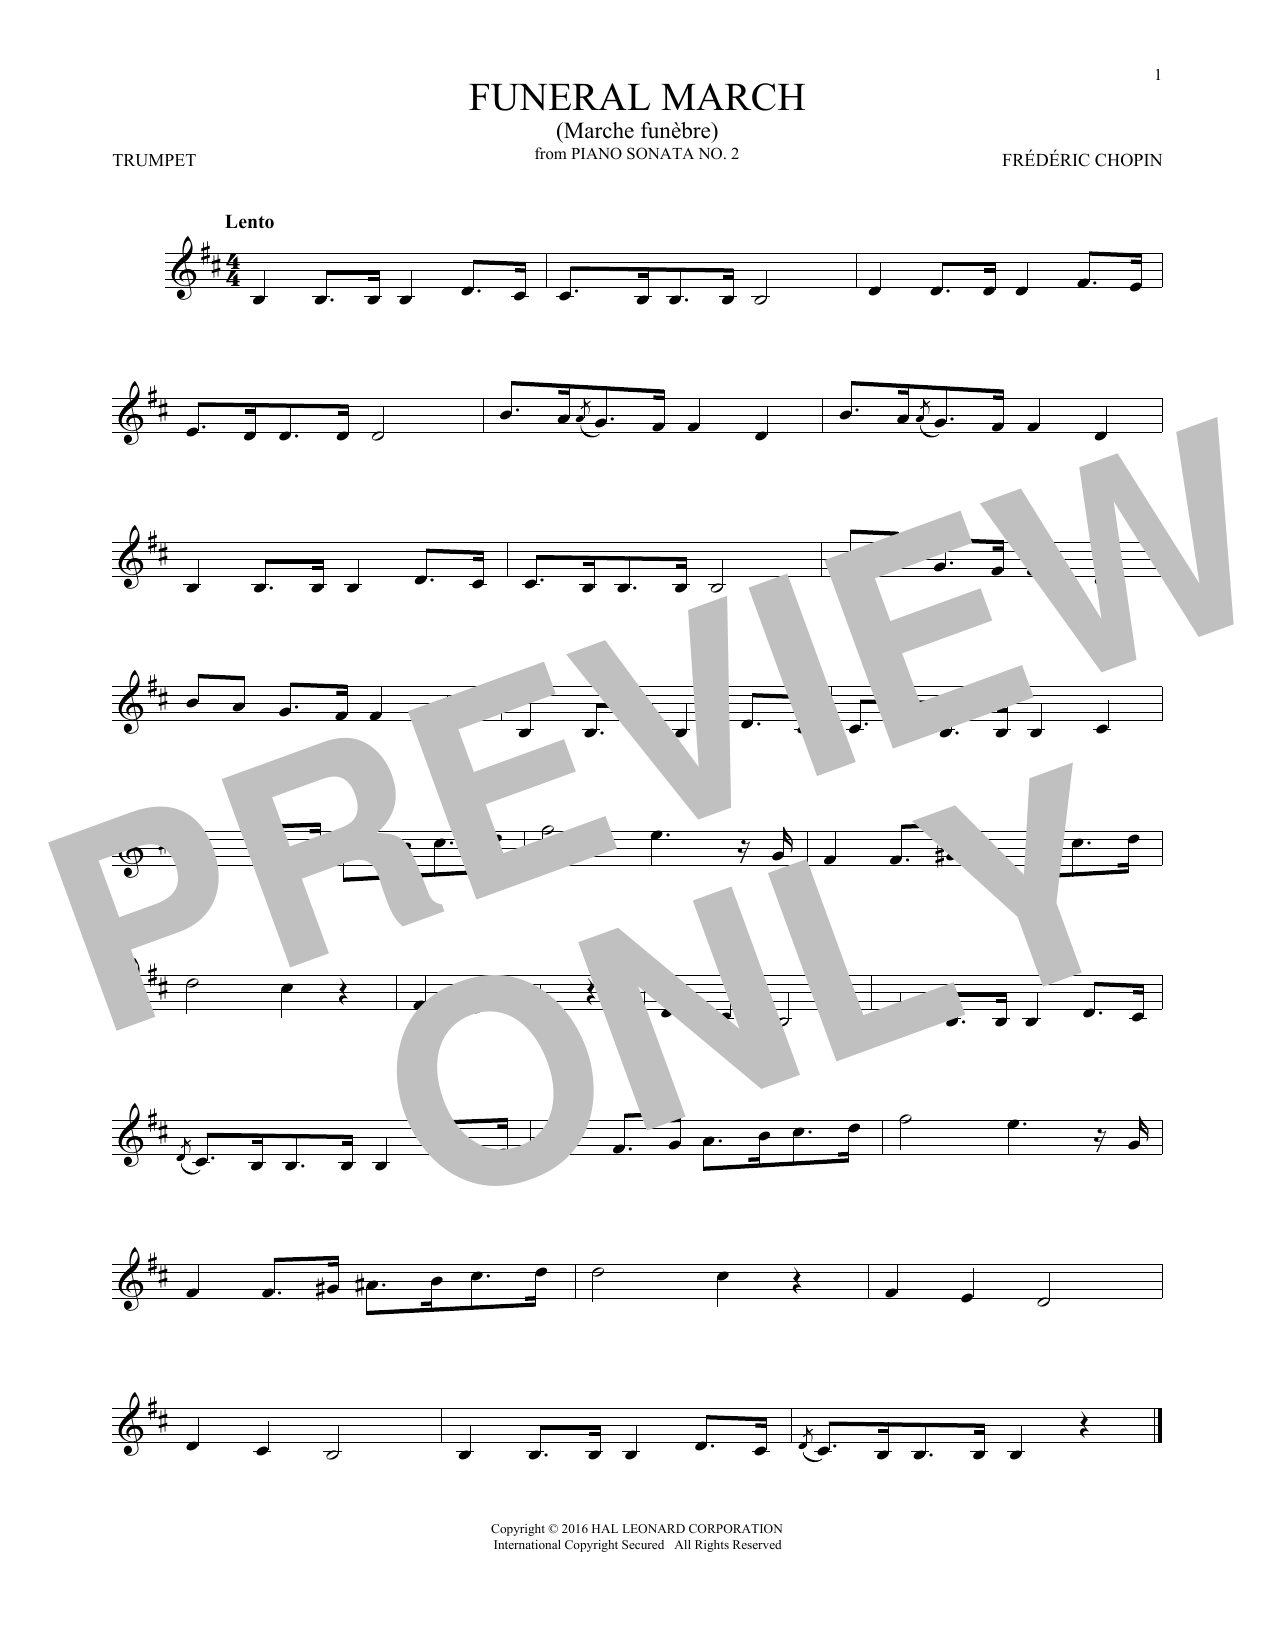 Frederic Chopin Funeral March sheet music notes and chords. Download Printable PDF.